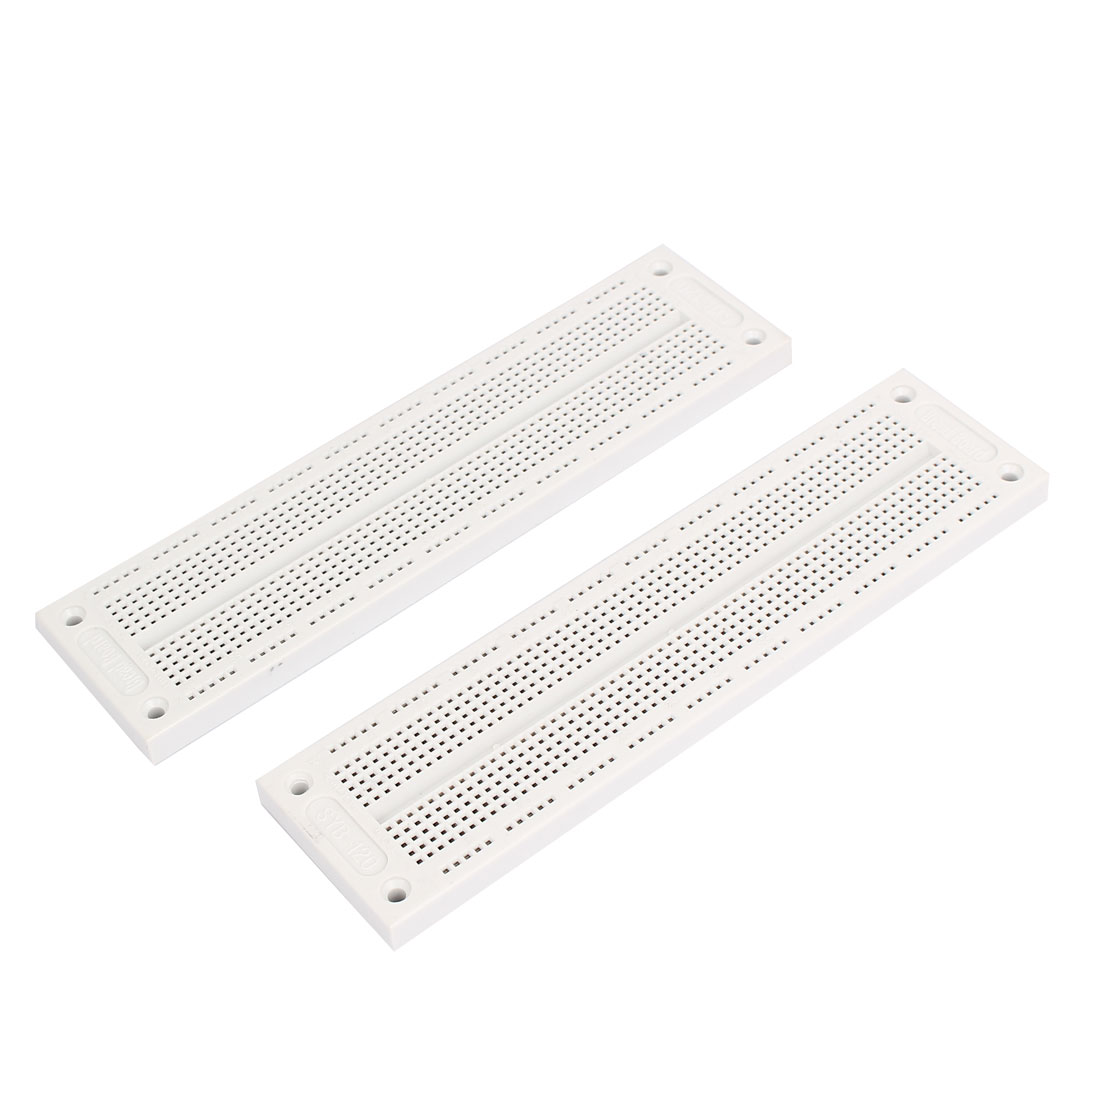 2Pcs SYB-120 Solderless Prototype 700 Tie Points Breadboard 178mm x 47mm x 9mm